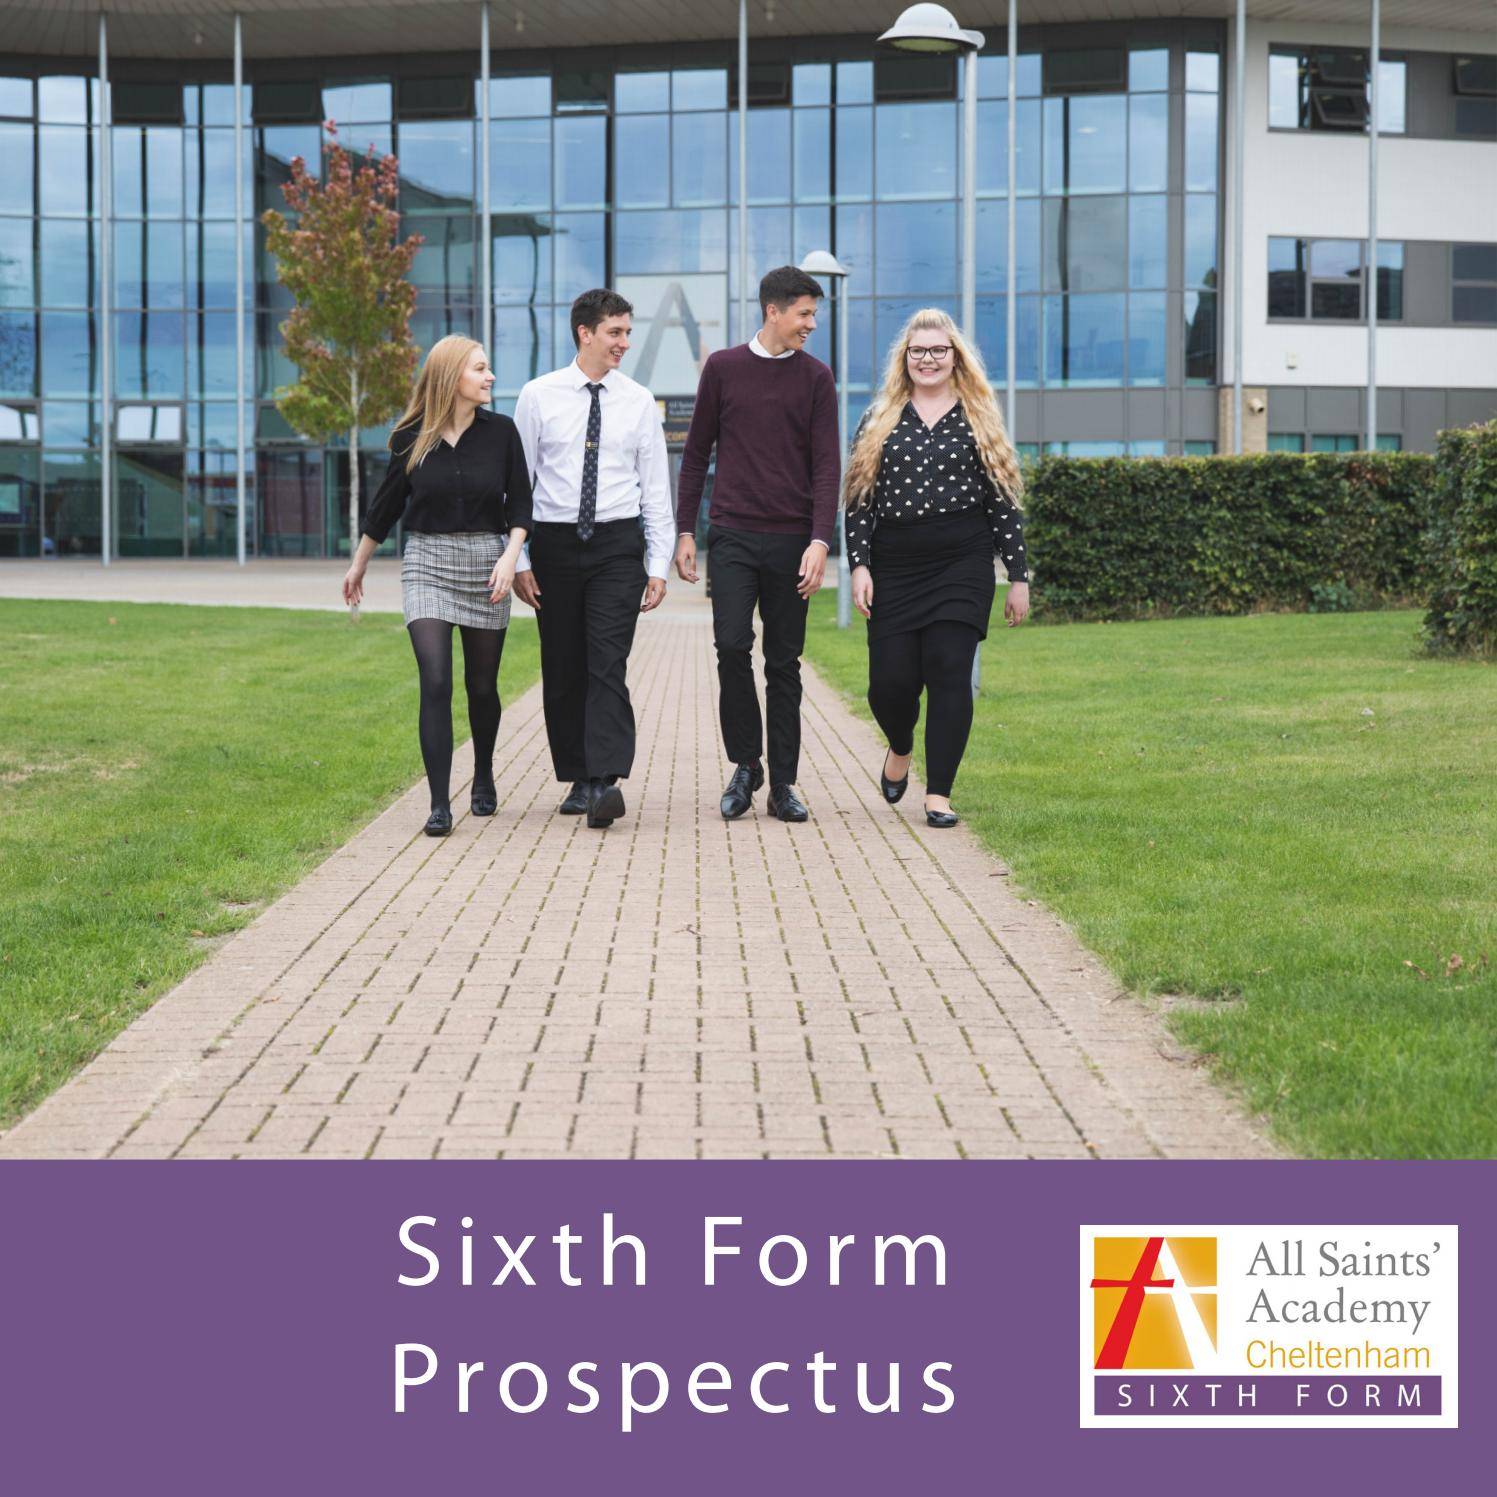 All Saints' Academy Sixth Form Prospectus 2018/19 by All